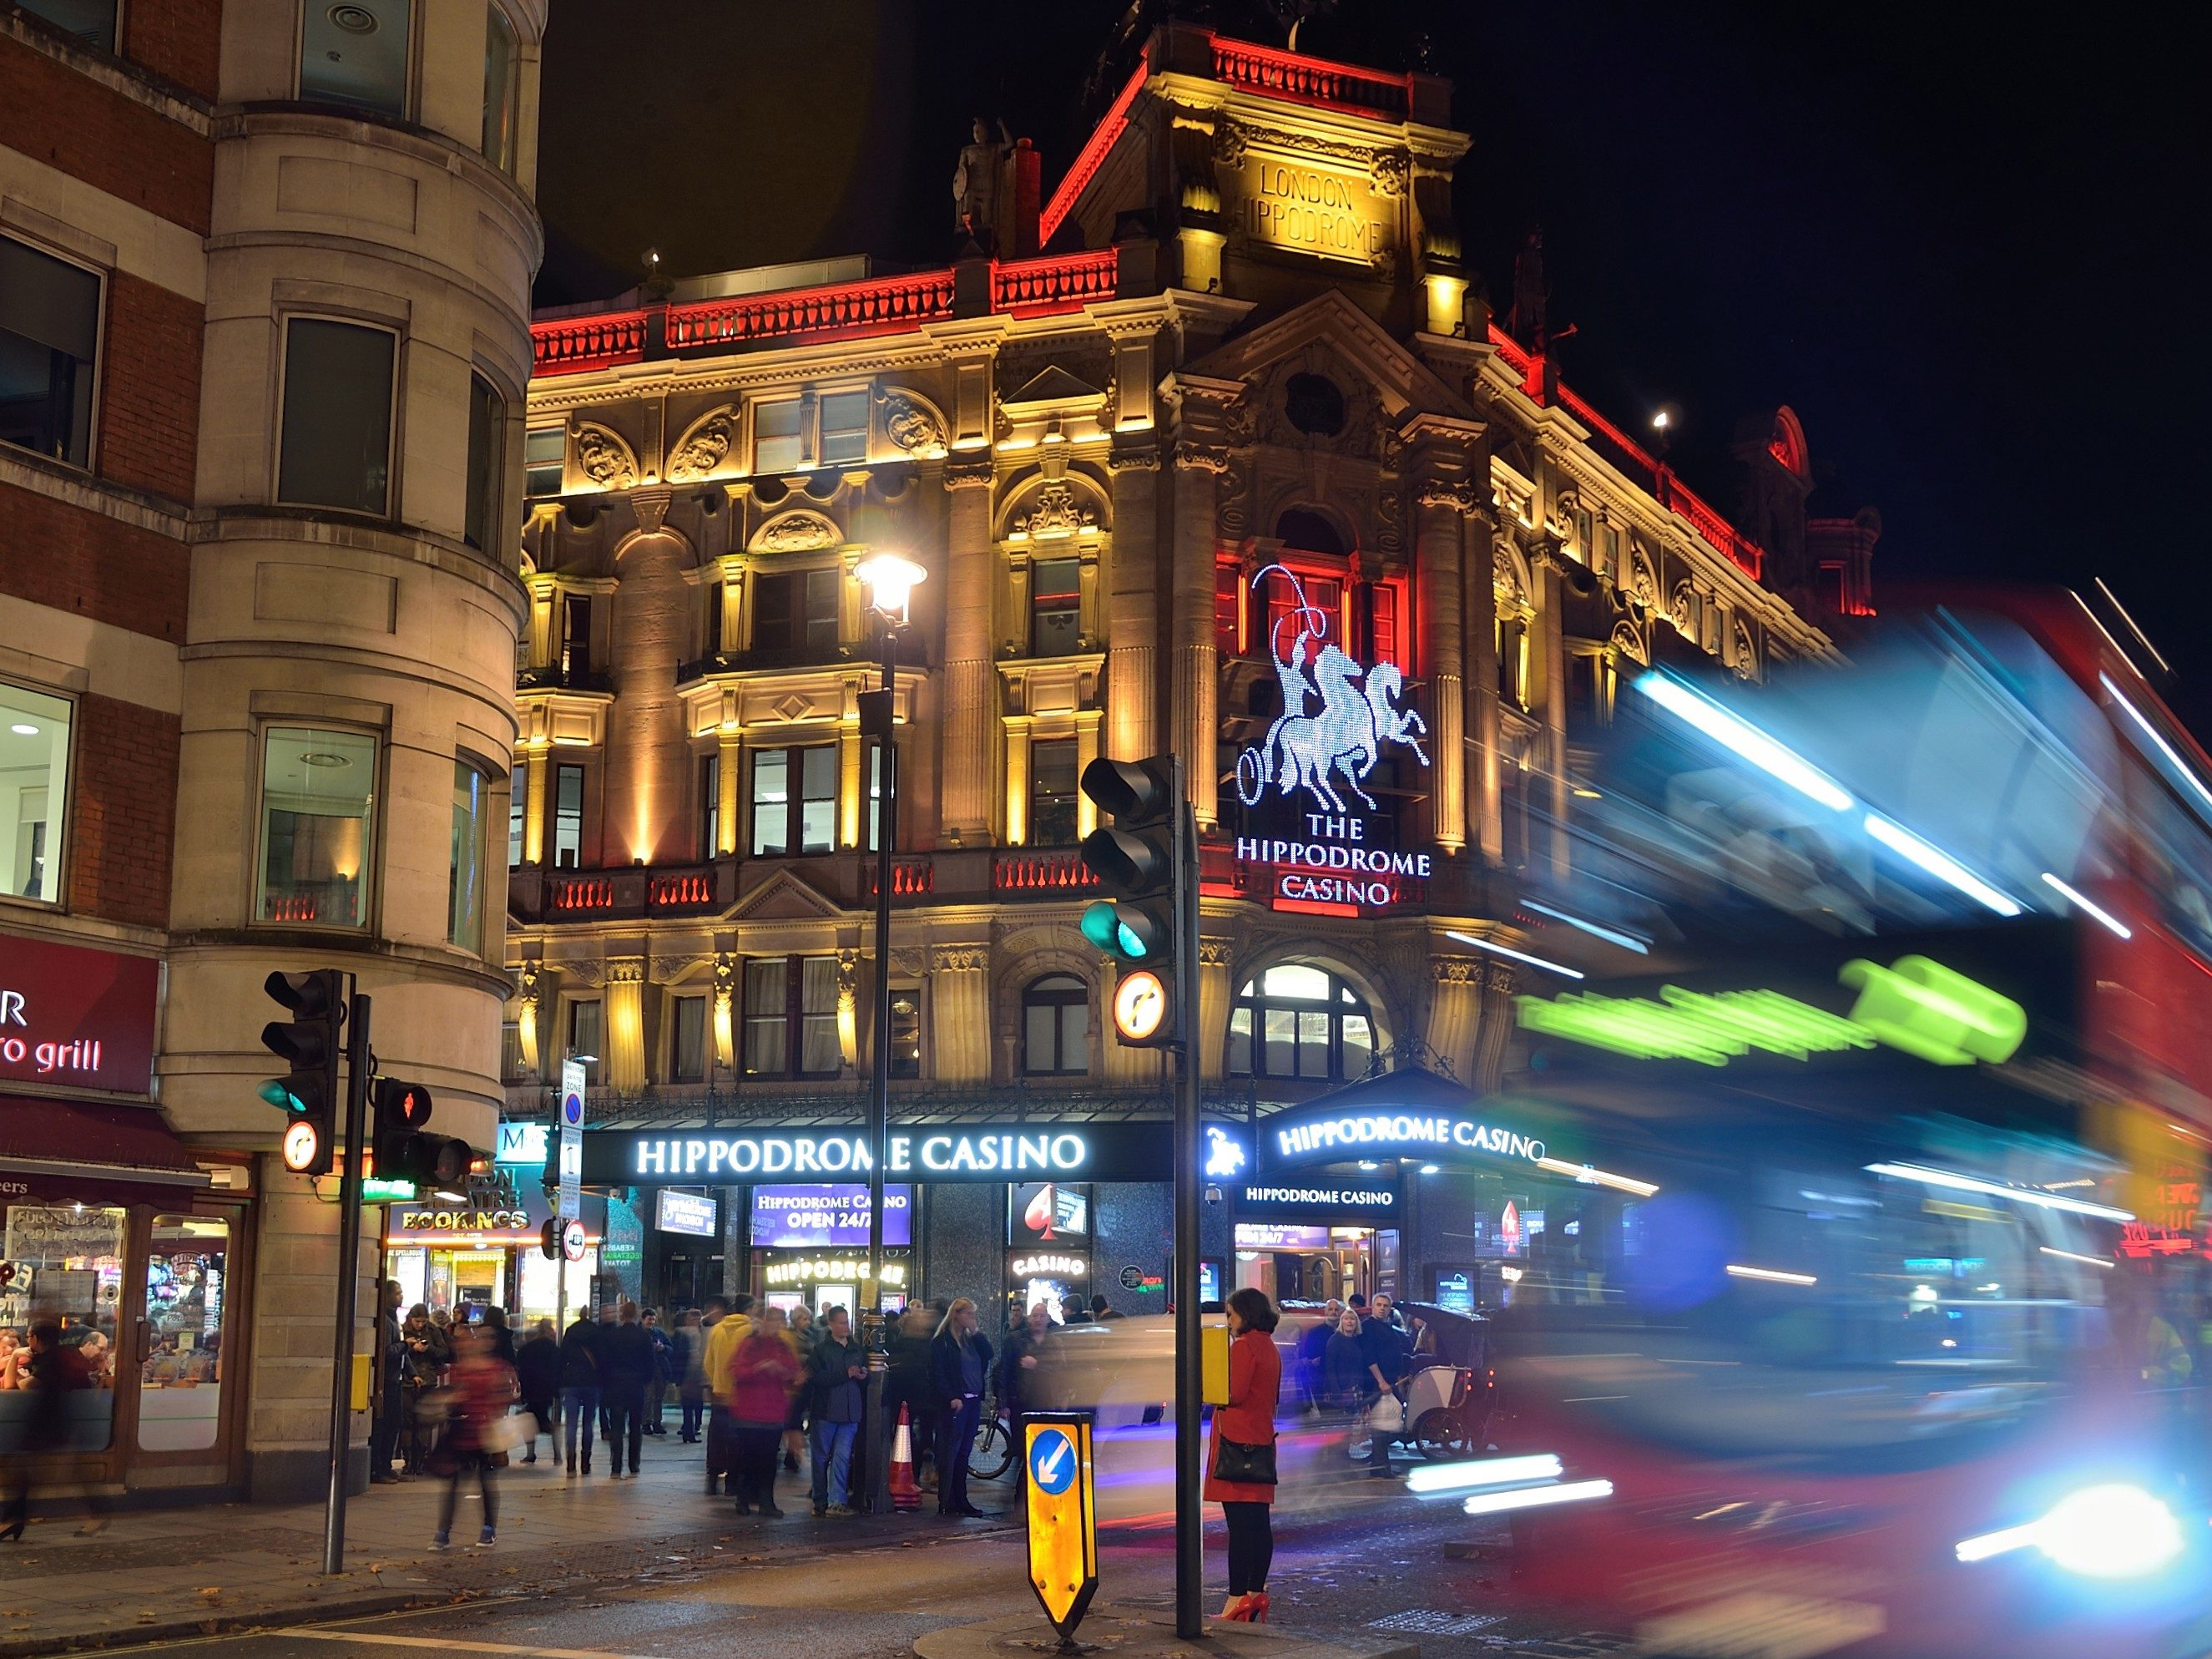 London attractions: The West End